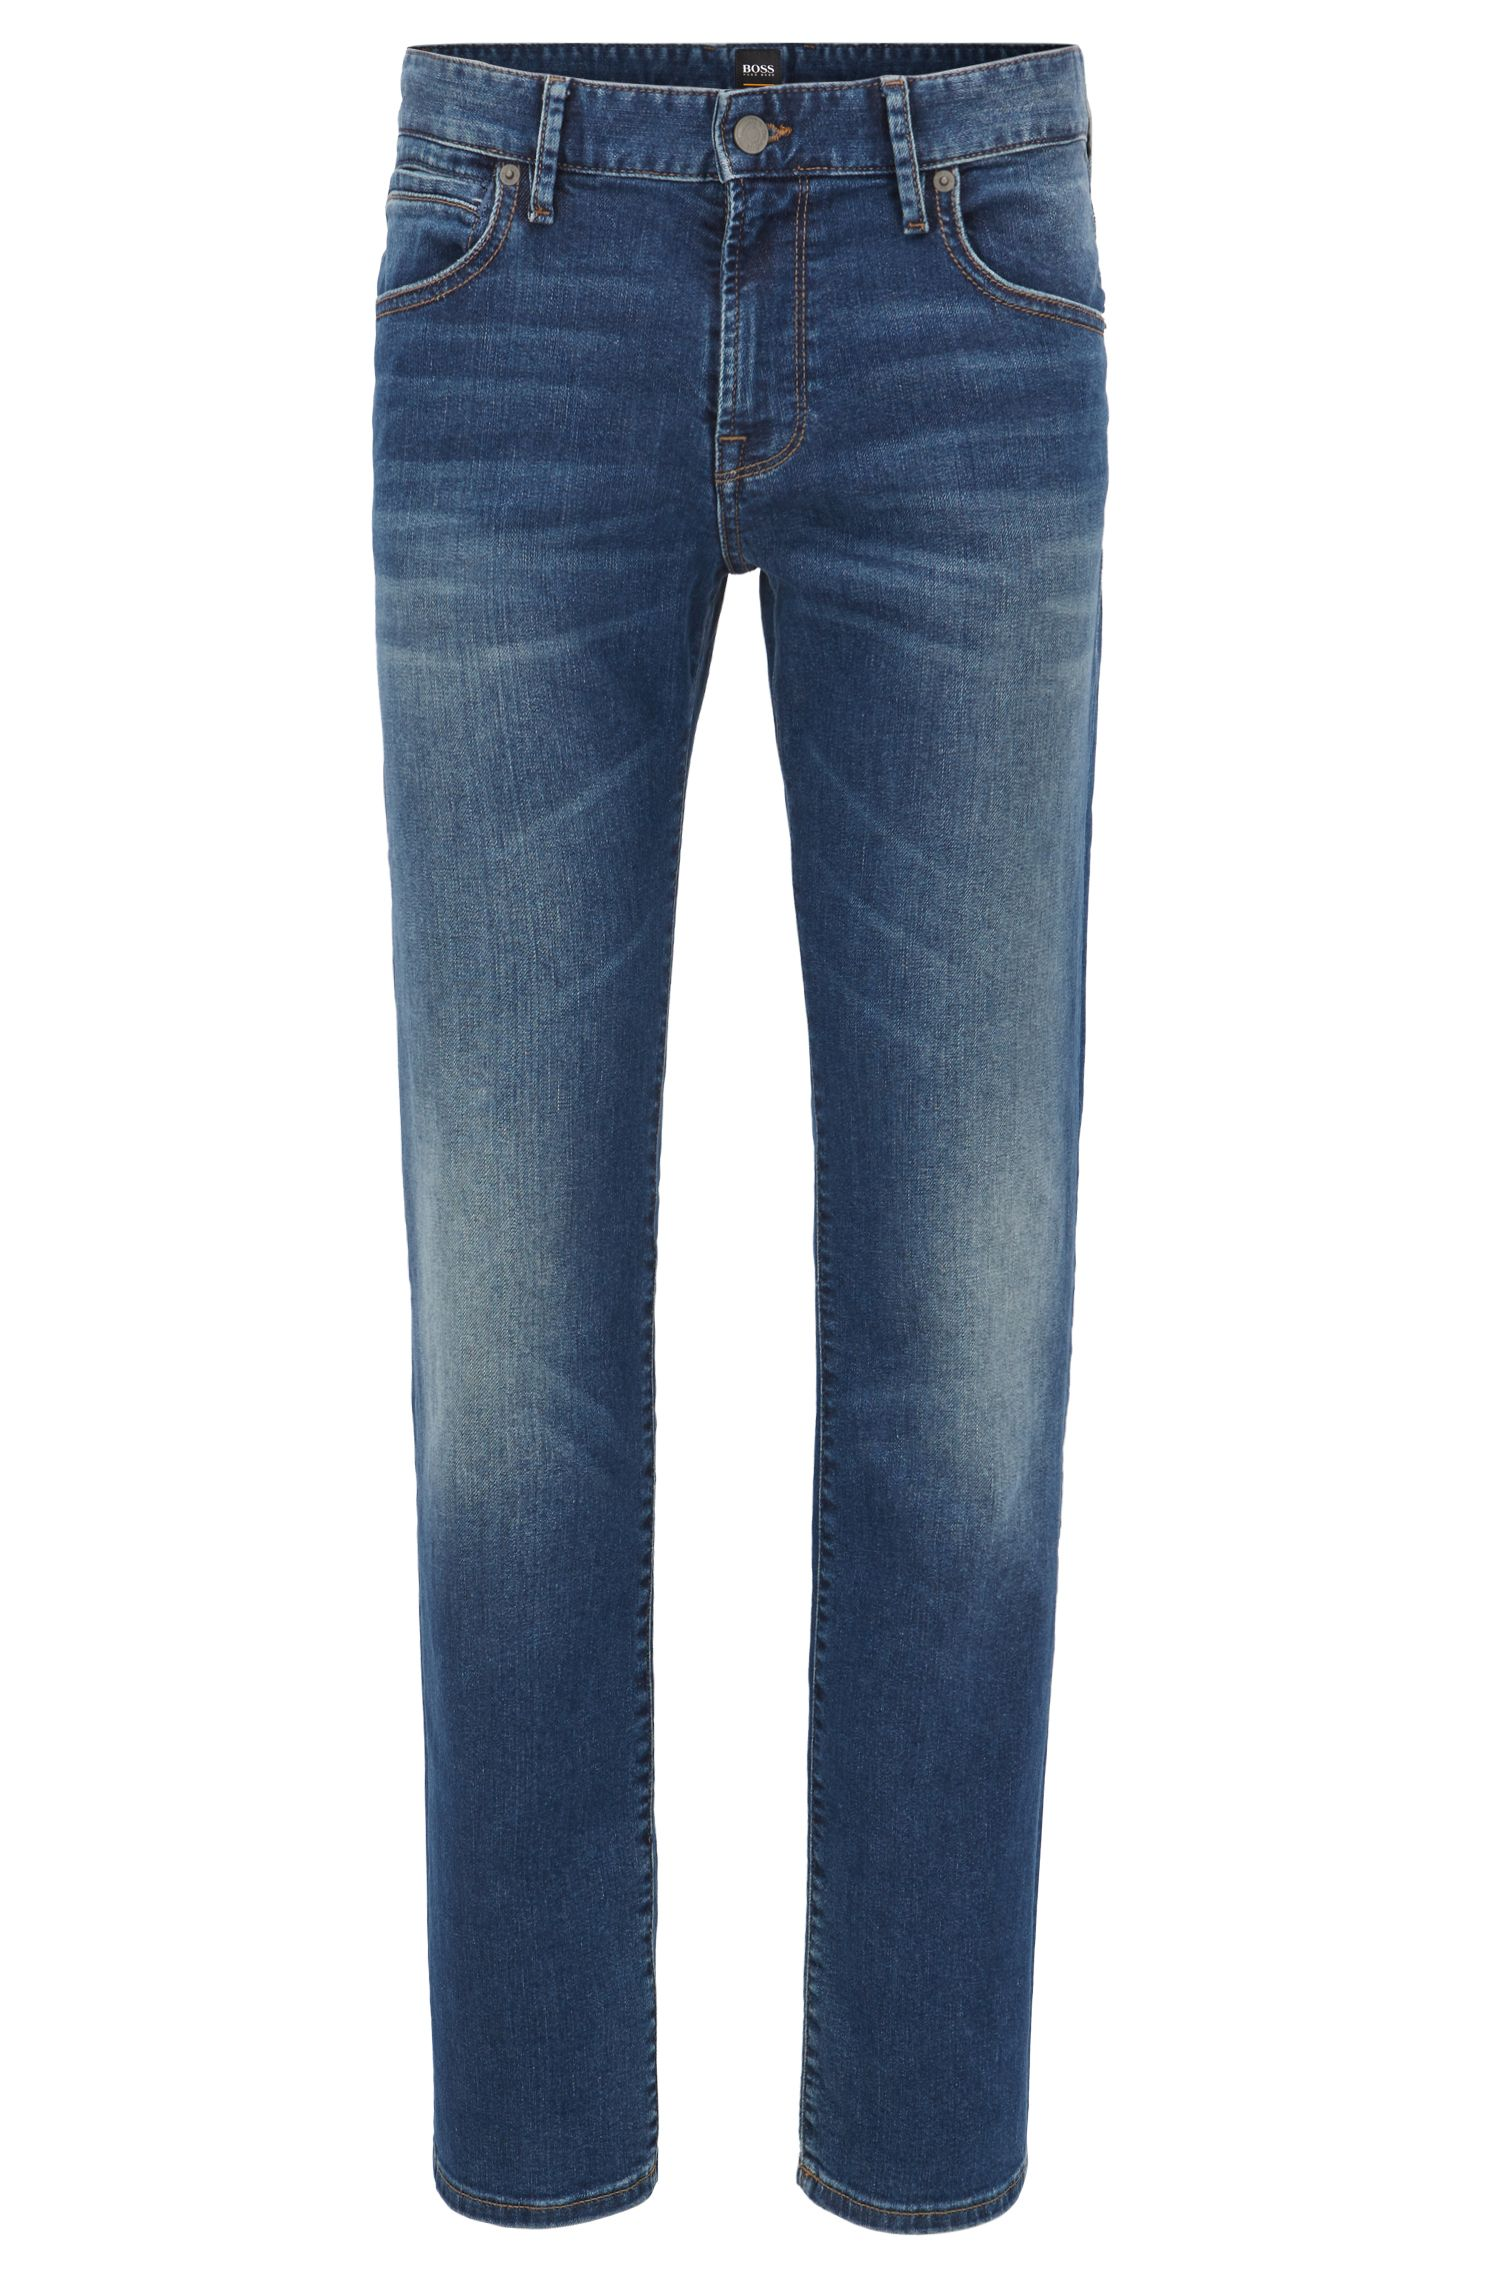 Jeans BOSS Orange Regular Fit en denim indigo délavé